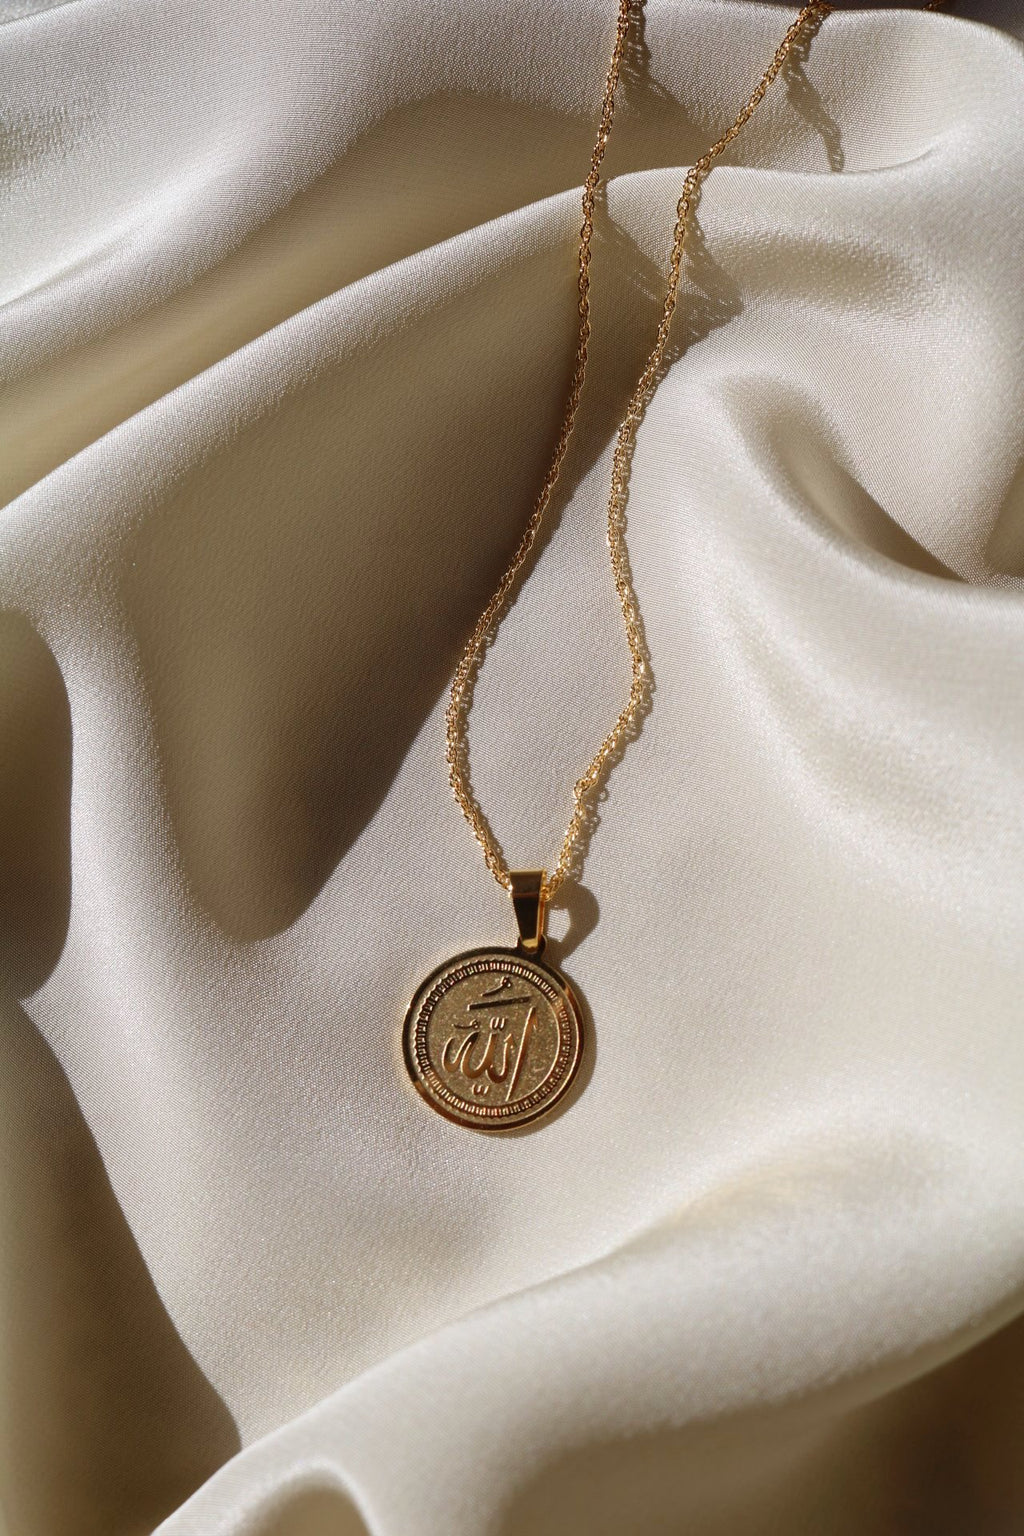 medallion pendant with gold chain